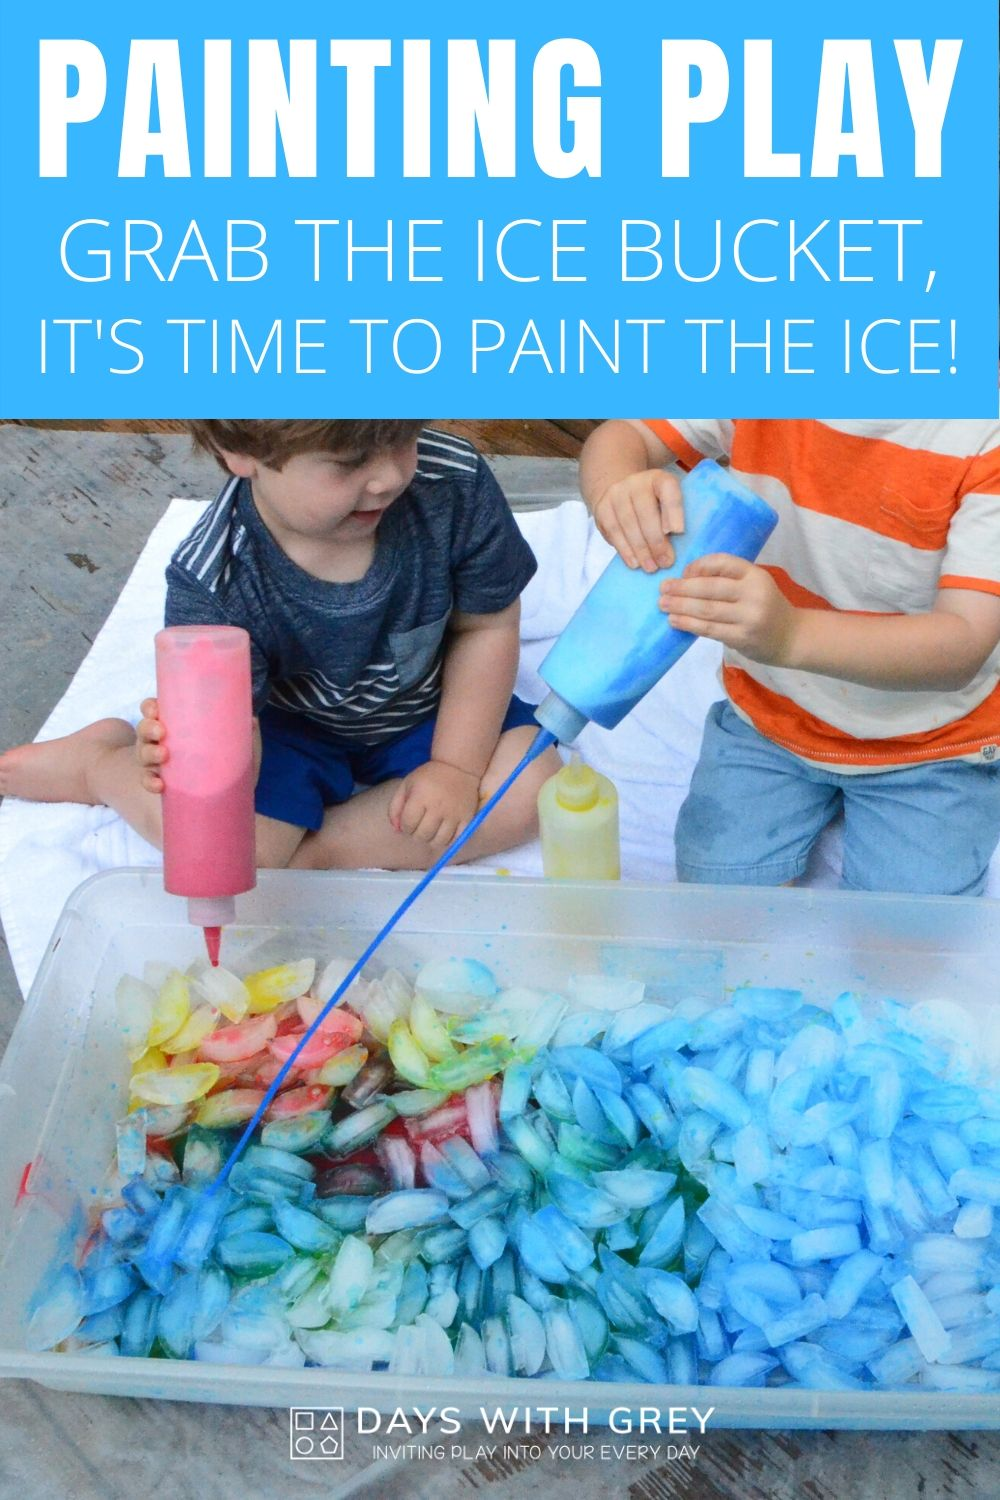 Children painting ice with squirt bottles